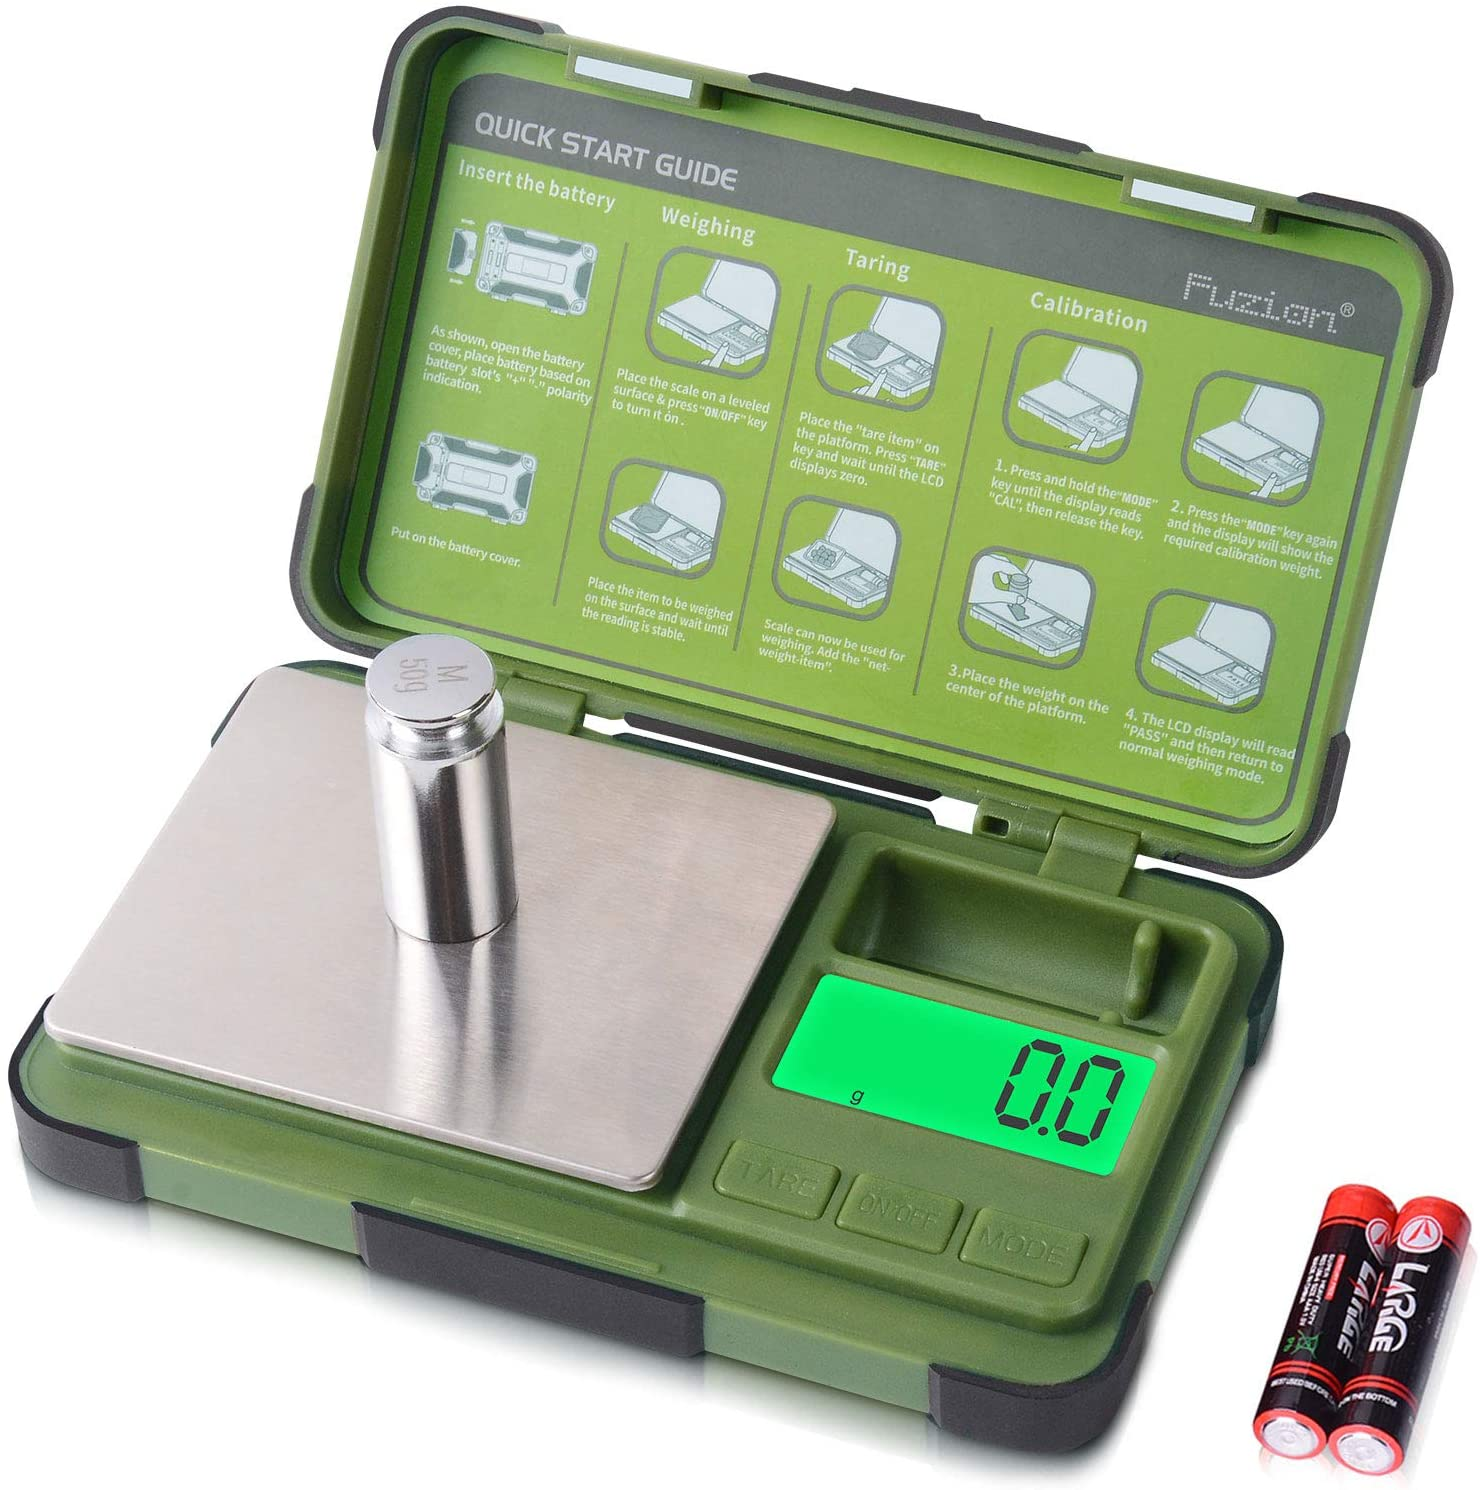 Fuzion Gram Scale 0.1g/1000g, Digital Pocket Scale with 6 Modes Grams and Ounces, Small Herb Scale for Powder, Food, Jewelry